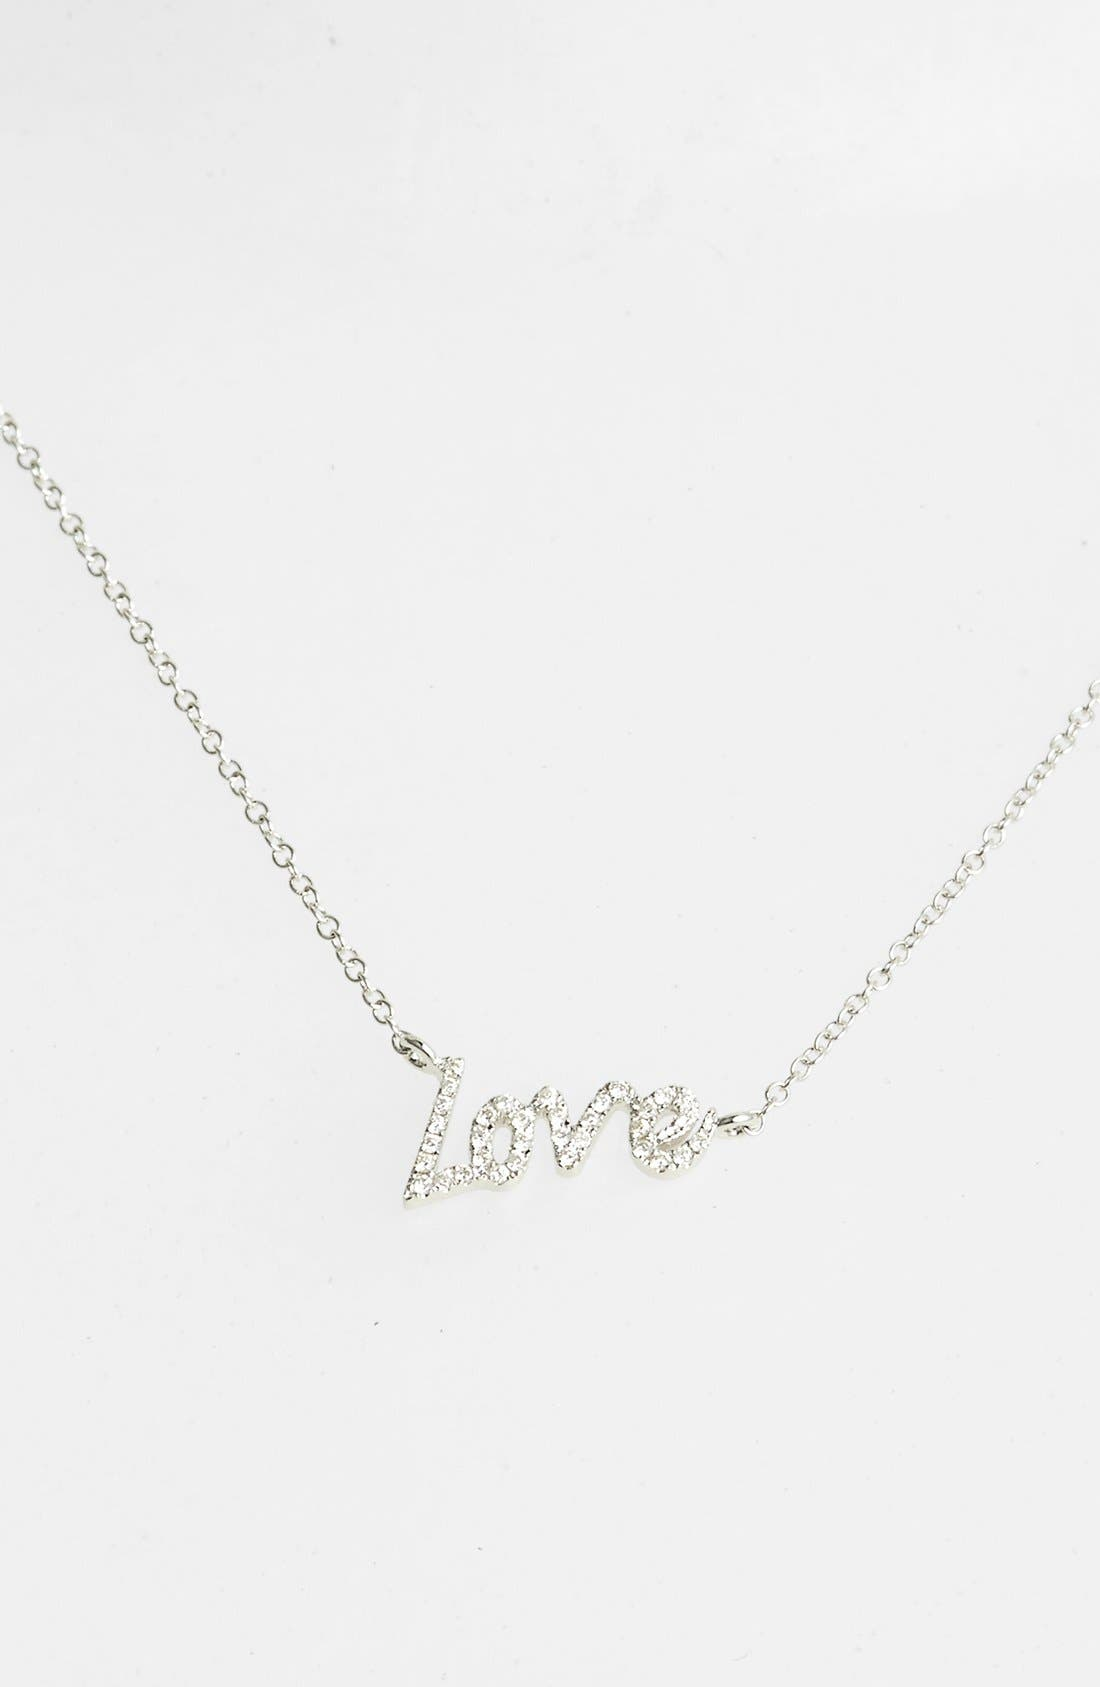 Alternate Image 1 Selected - MeiraT 'Dazzling' Diamond Love Pendant Necklace